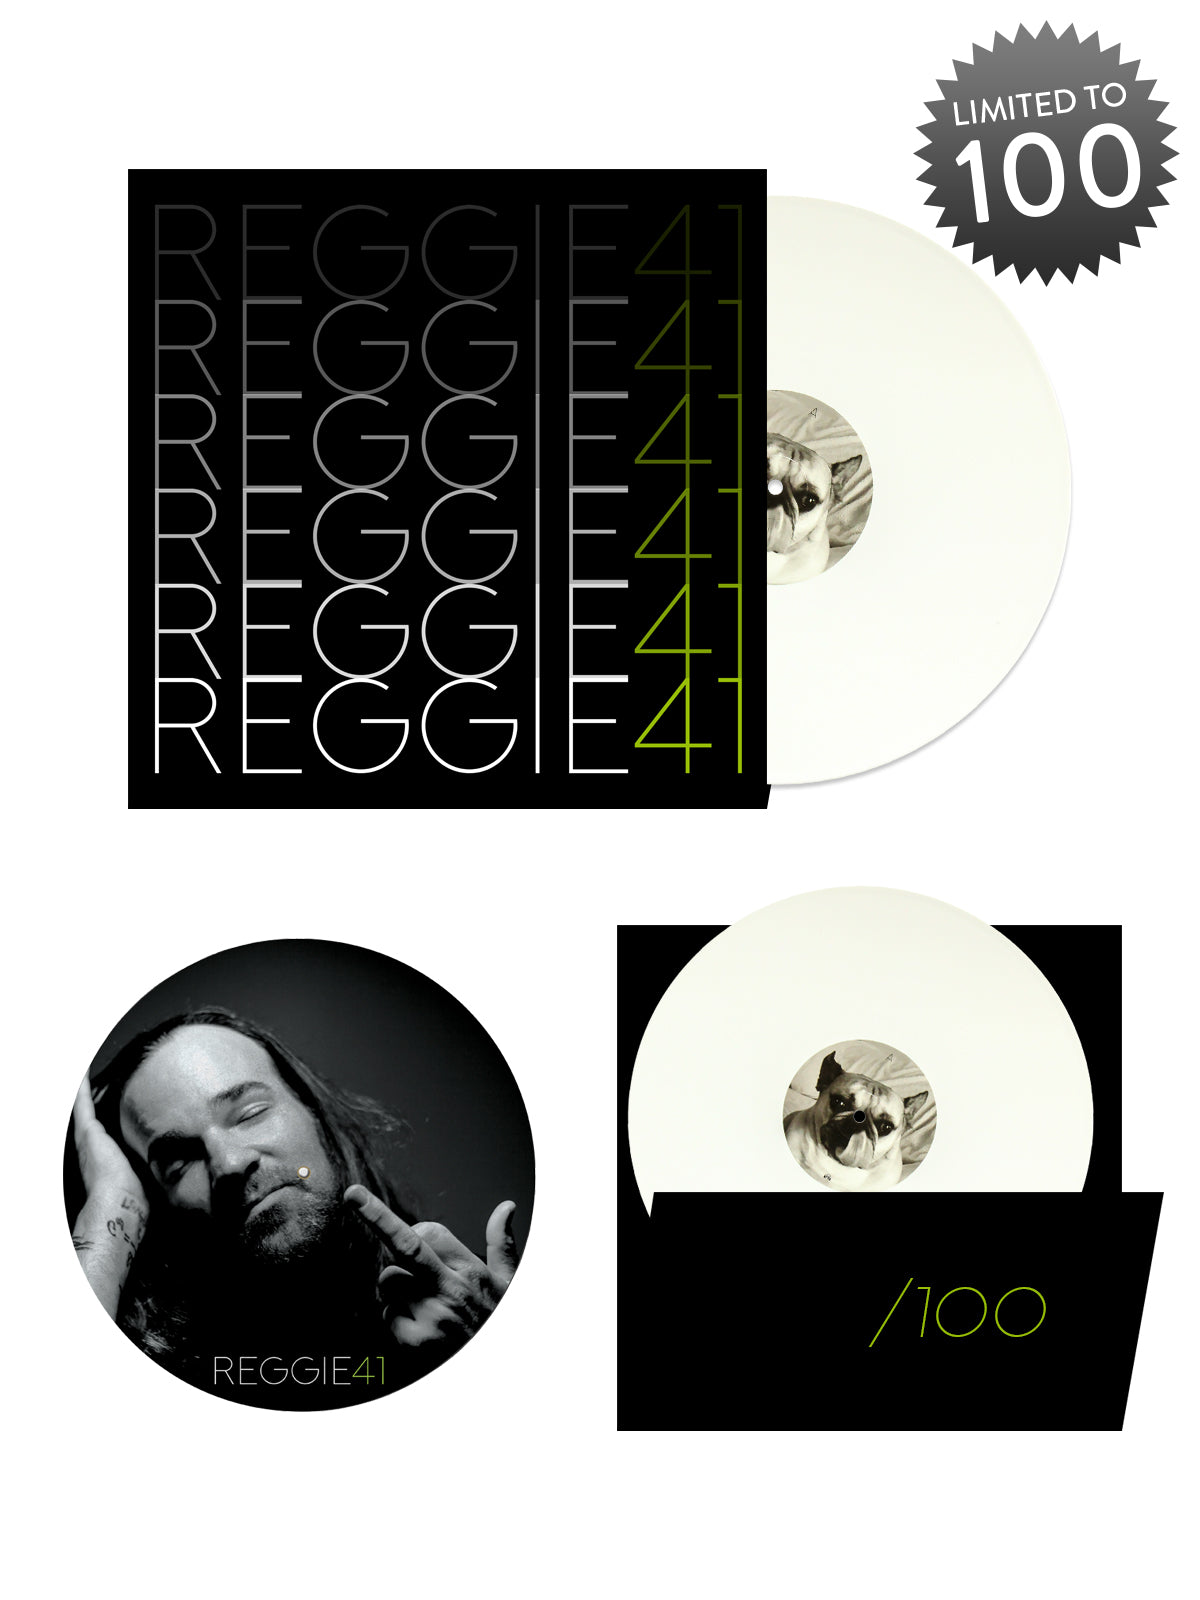 Reggie & The Full Effect - 41 Vinyl Bundle - Merch Limited